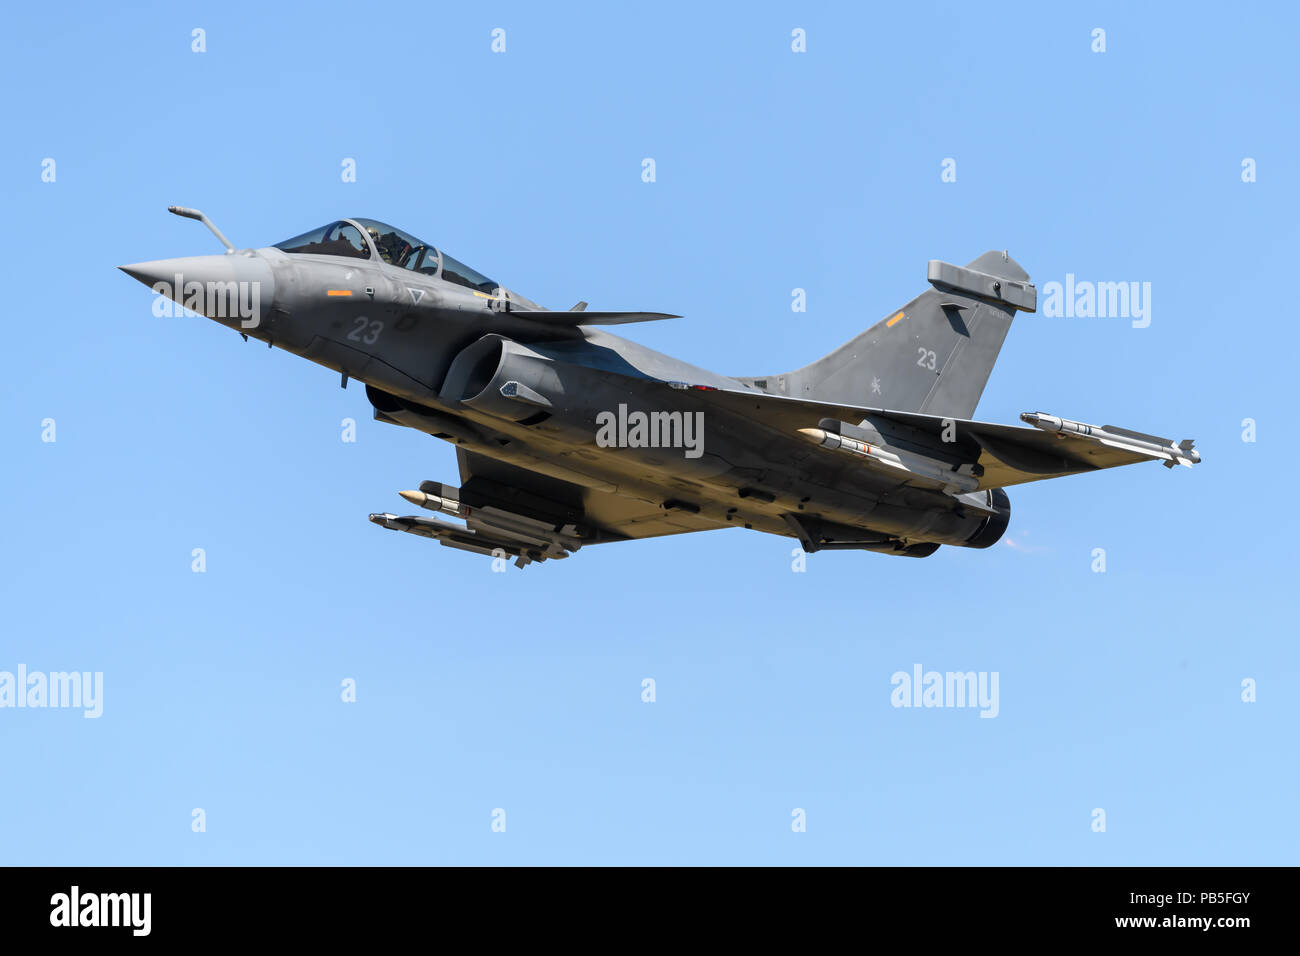 French Rafale fighter jet displaying at the Royal International Air Tattoo in July 2018 Stock Photo